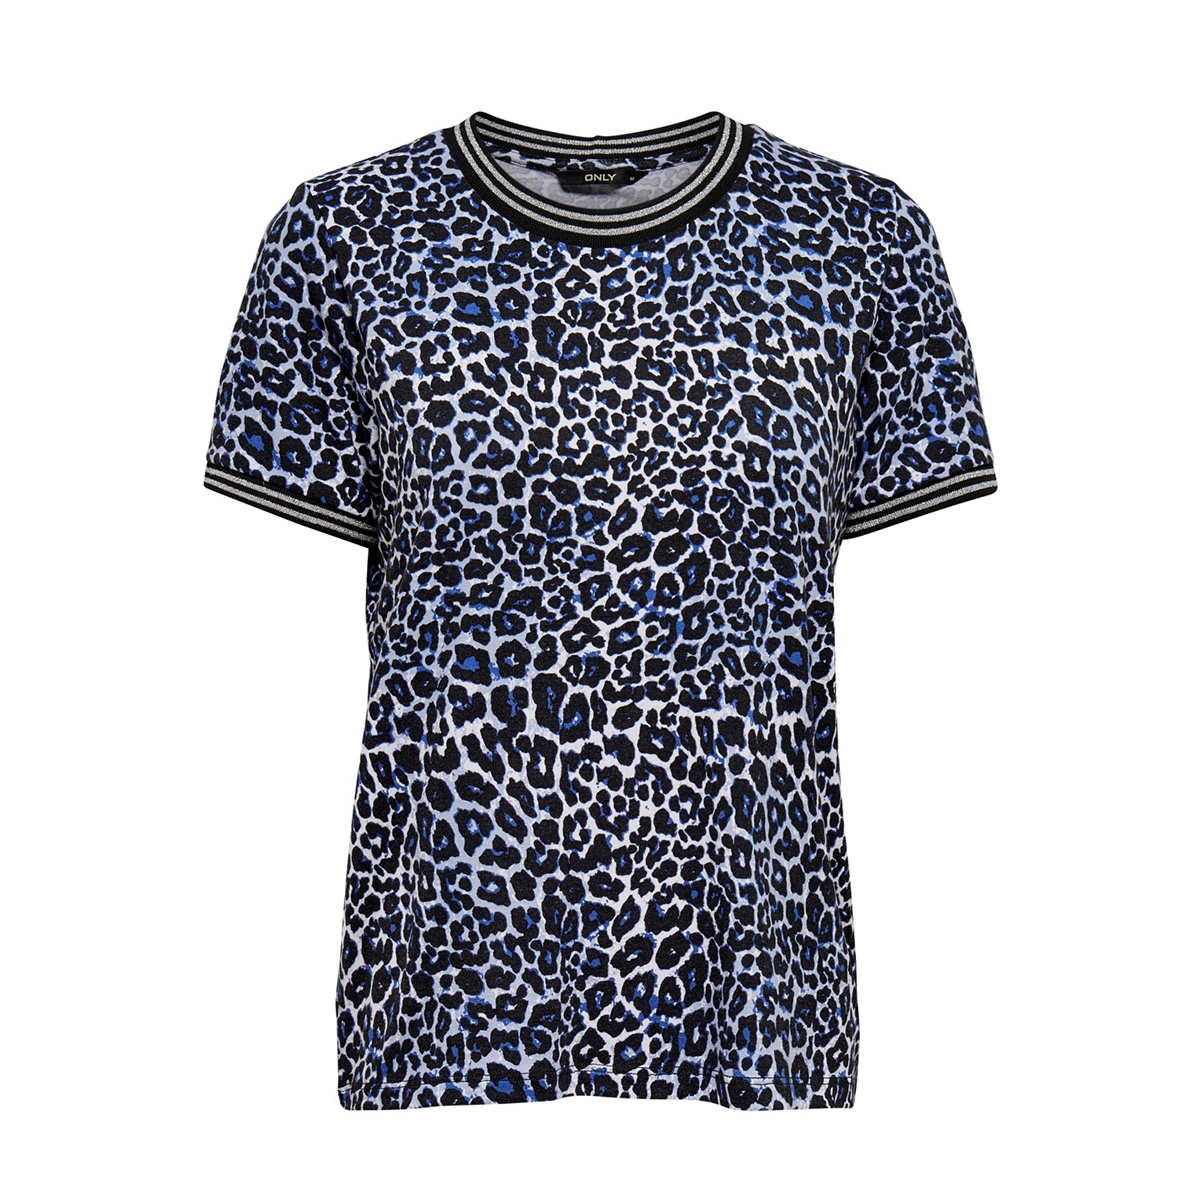 onlsport louisa s/s top jrs 15199798 only t-shirt surf the web/leo